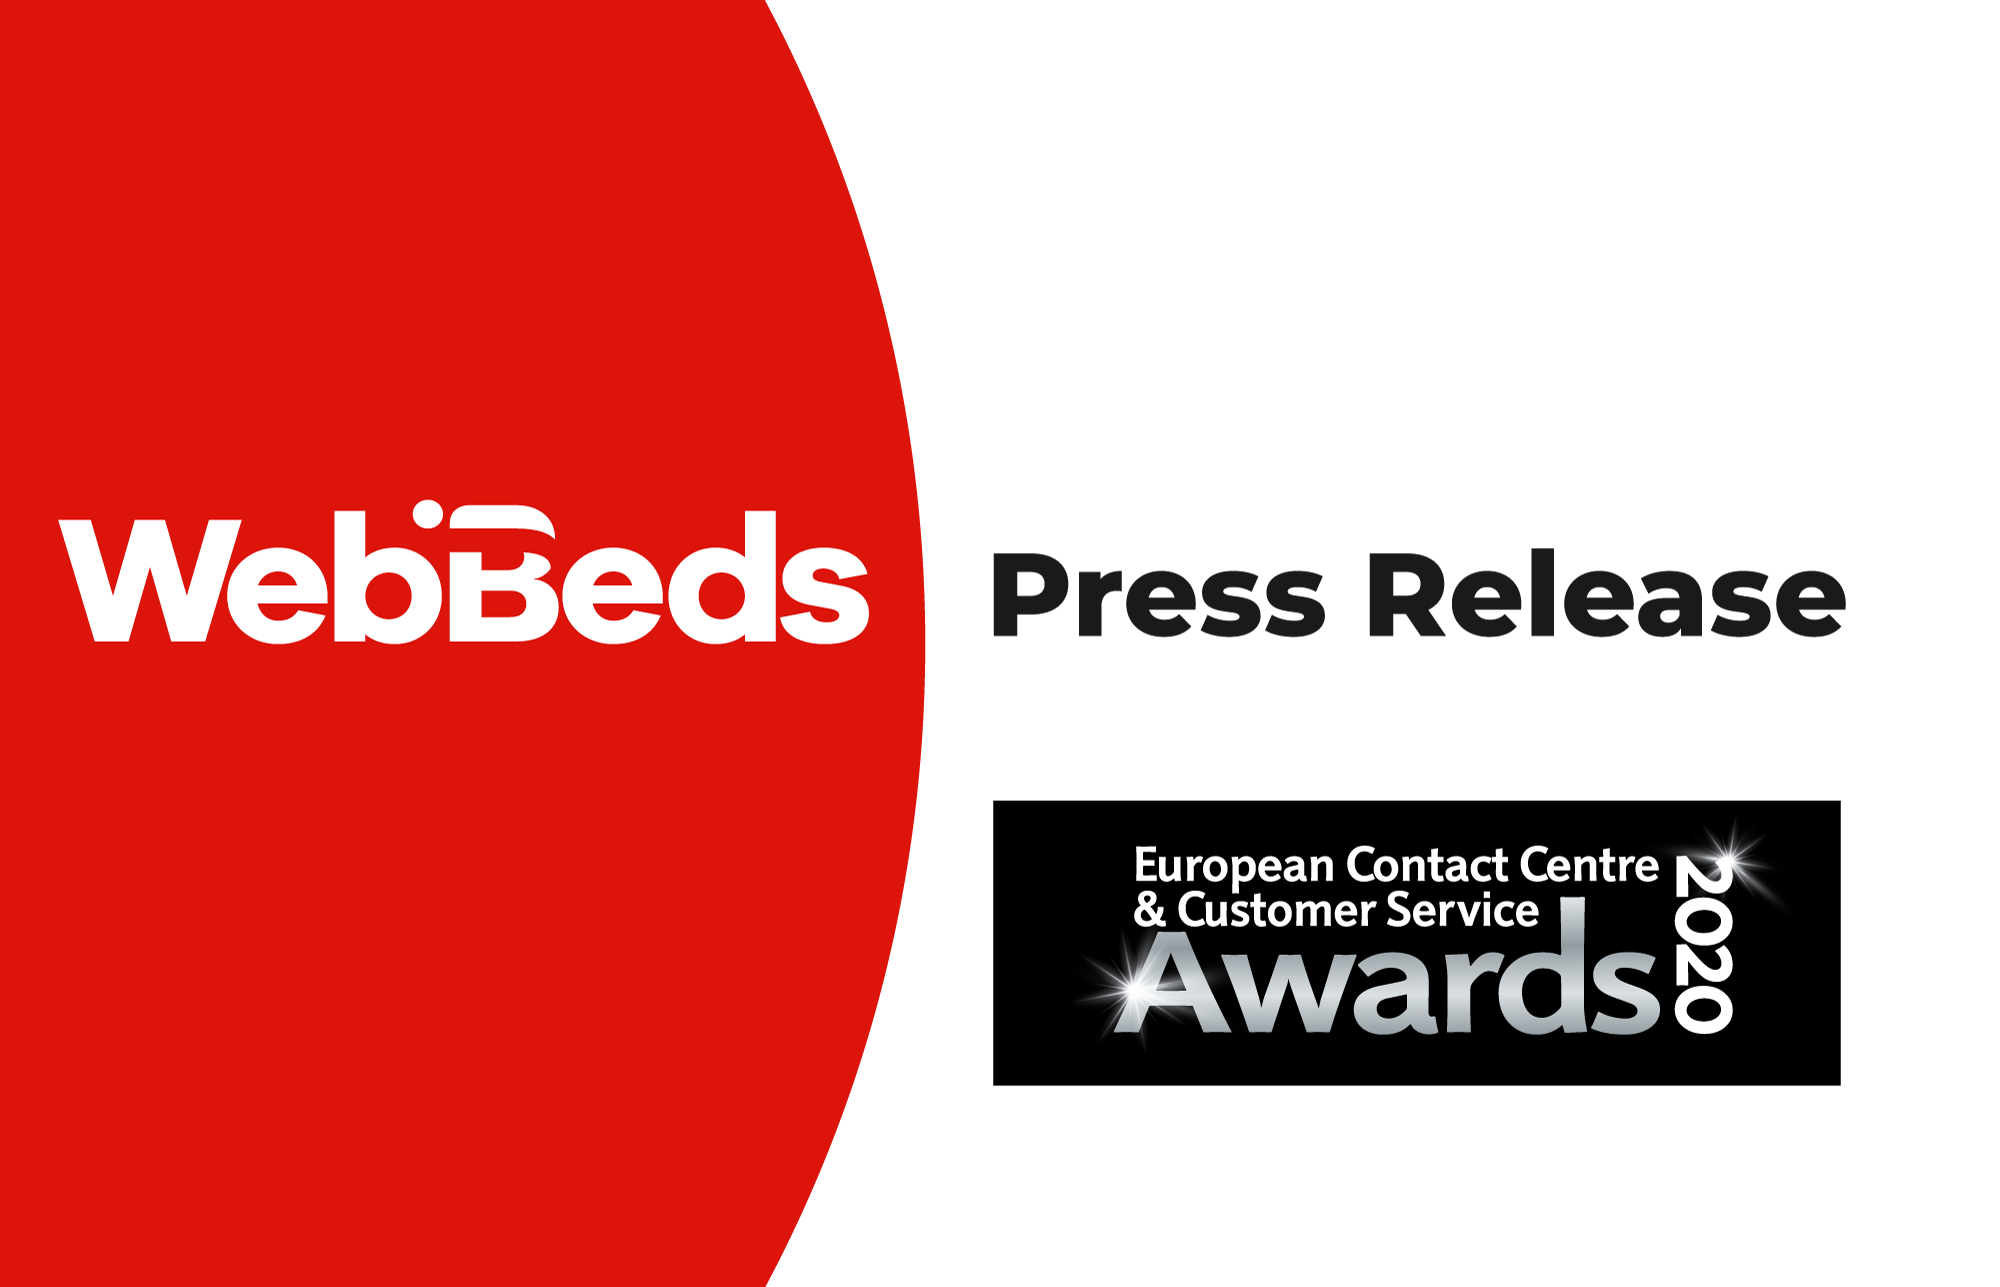 WebBeds announced as a Finalists in European Contact Centre & Customer Service Awards 2020.